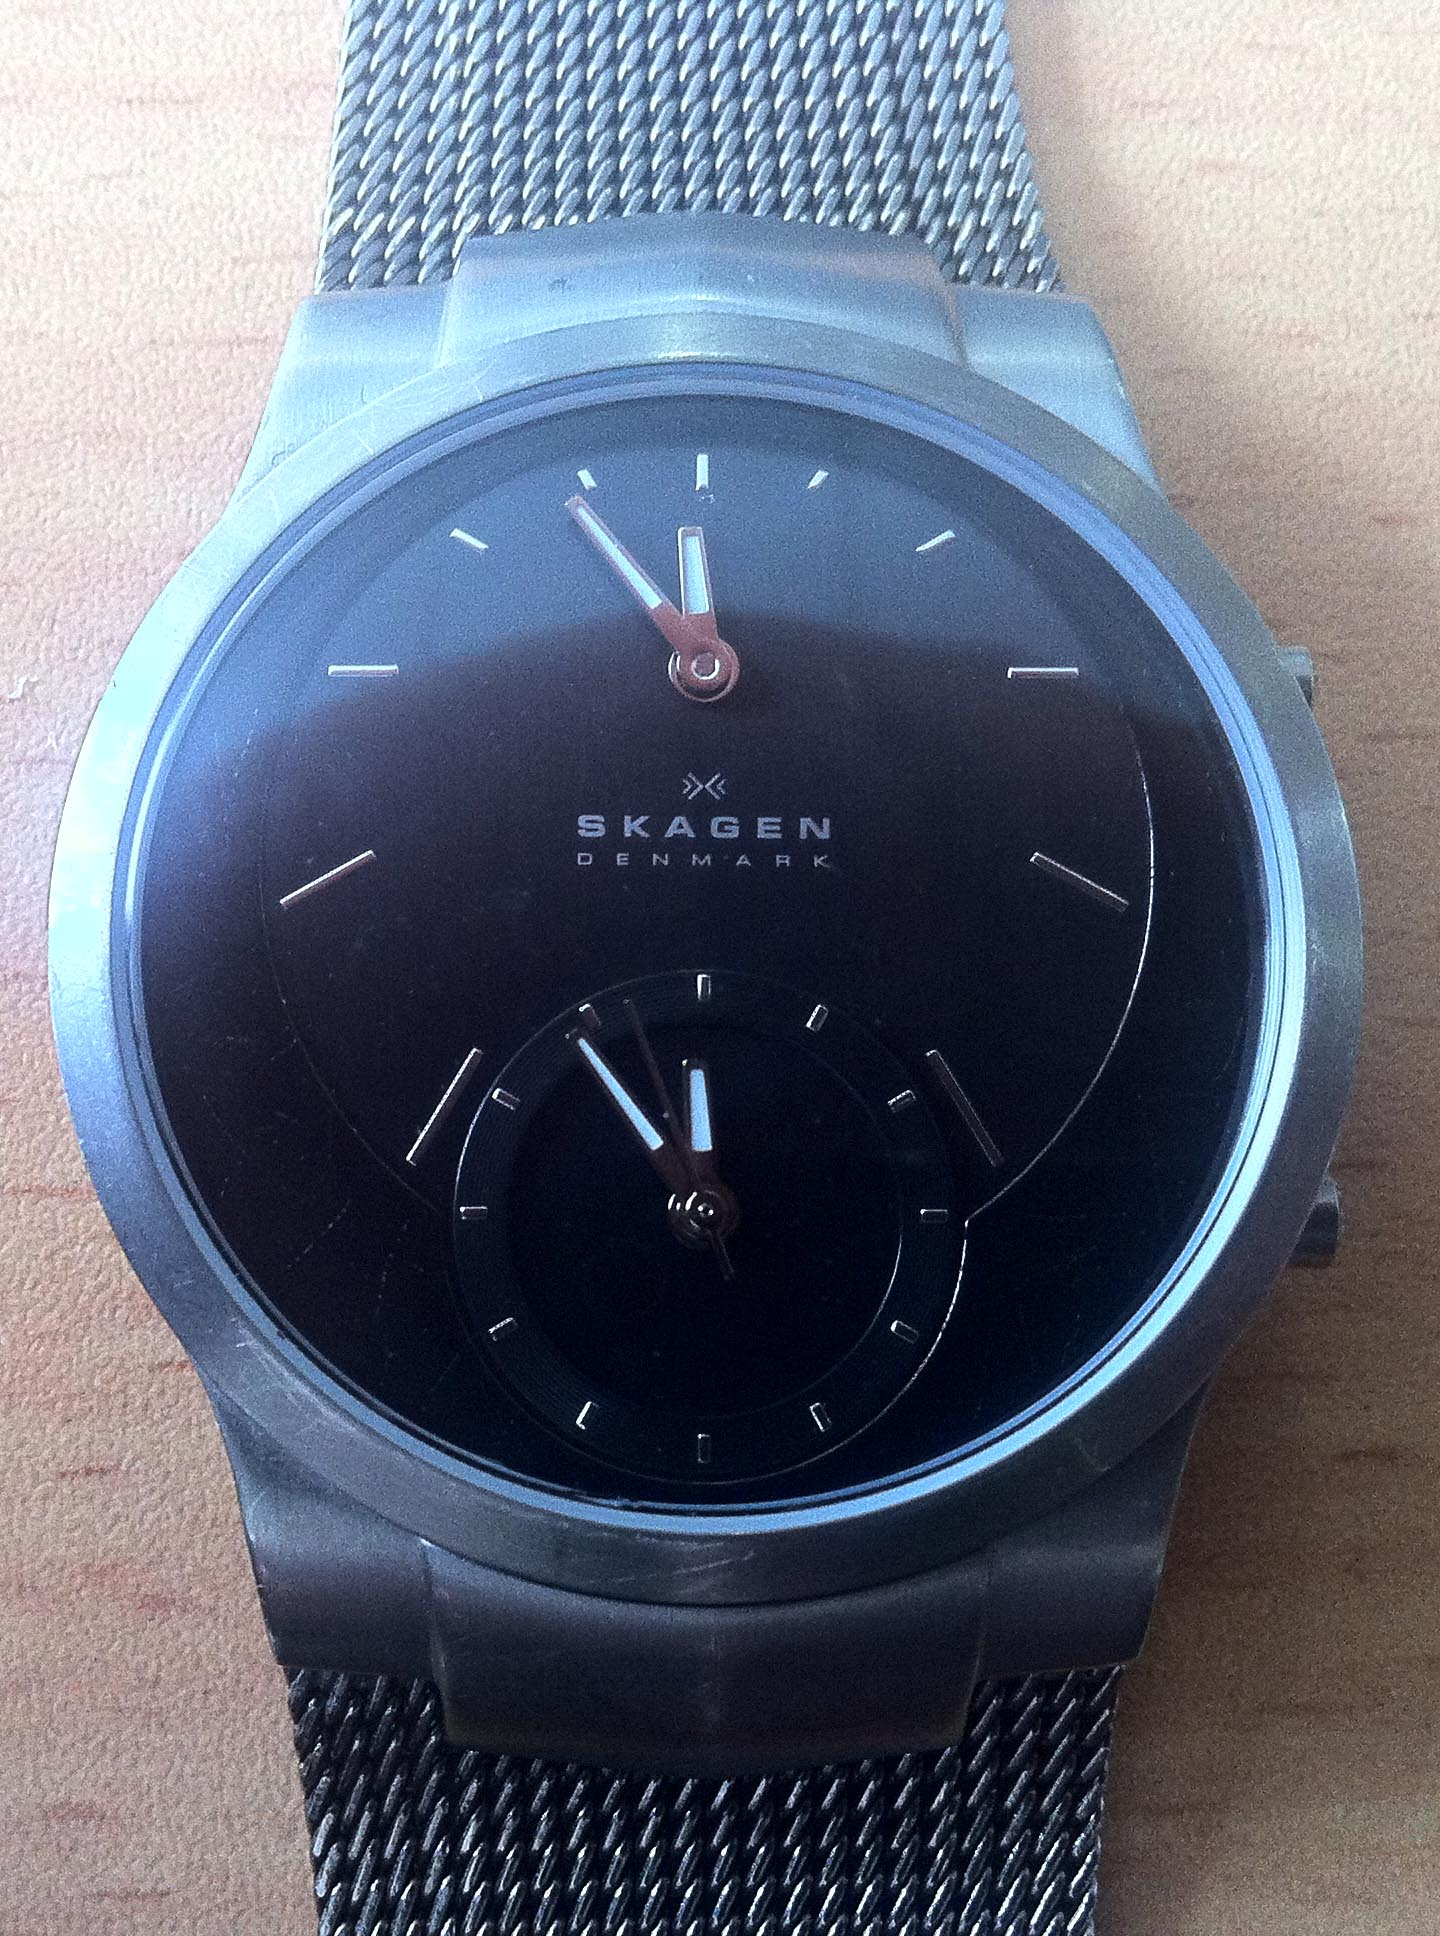 Charcoal Gray Skagen Dual Time Watch – This Is A Blog About Men's Style